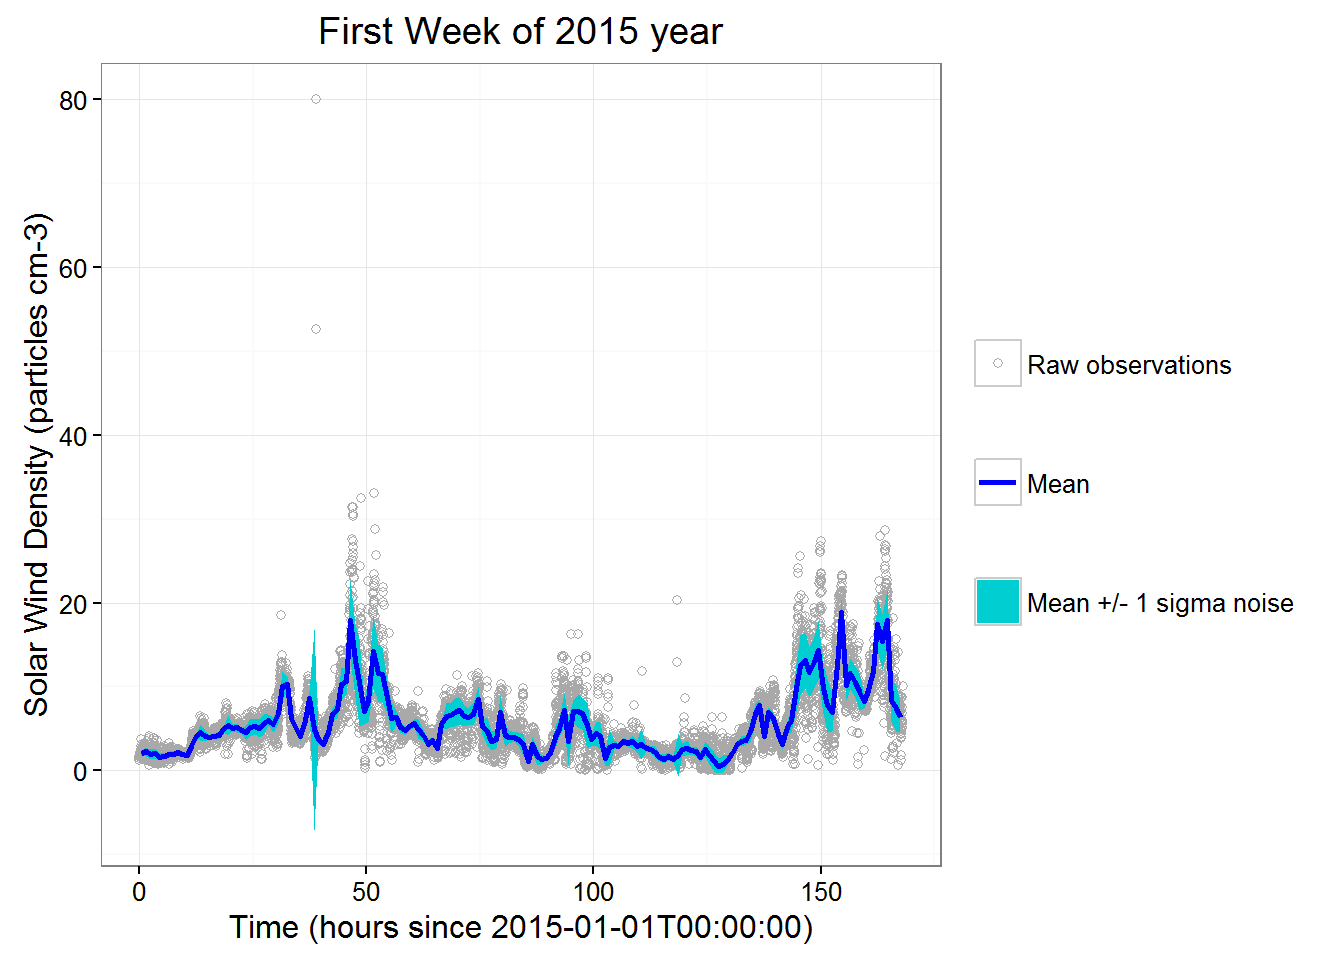 solar wind observations - density: first week of 2015